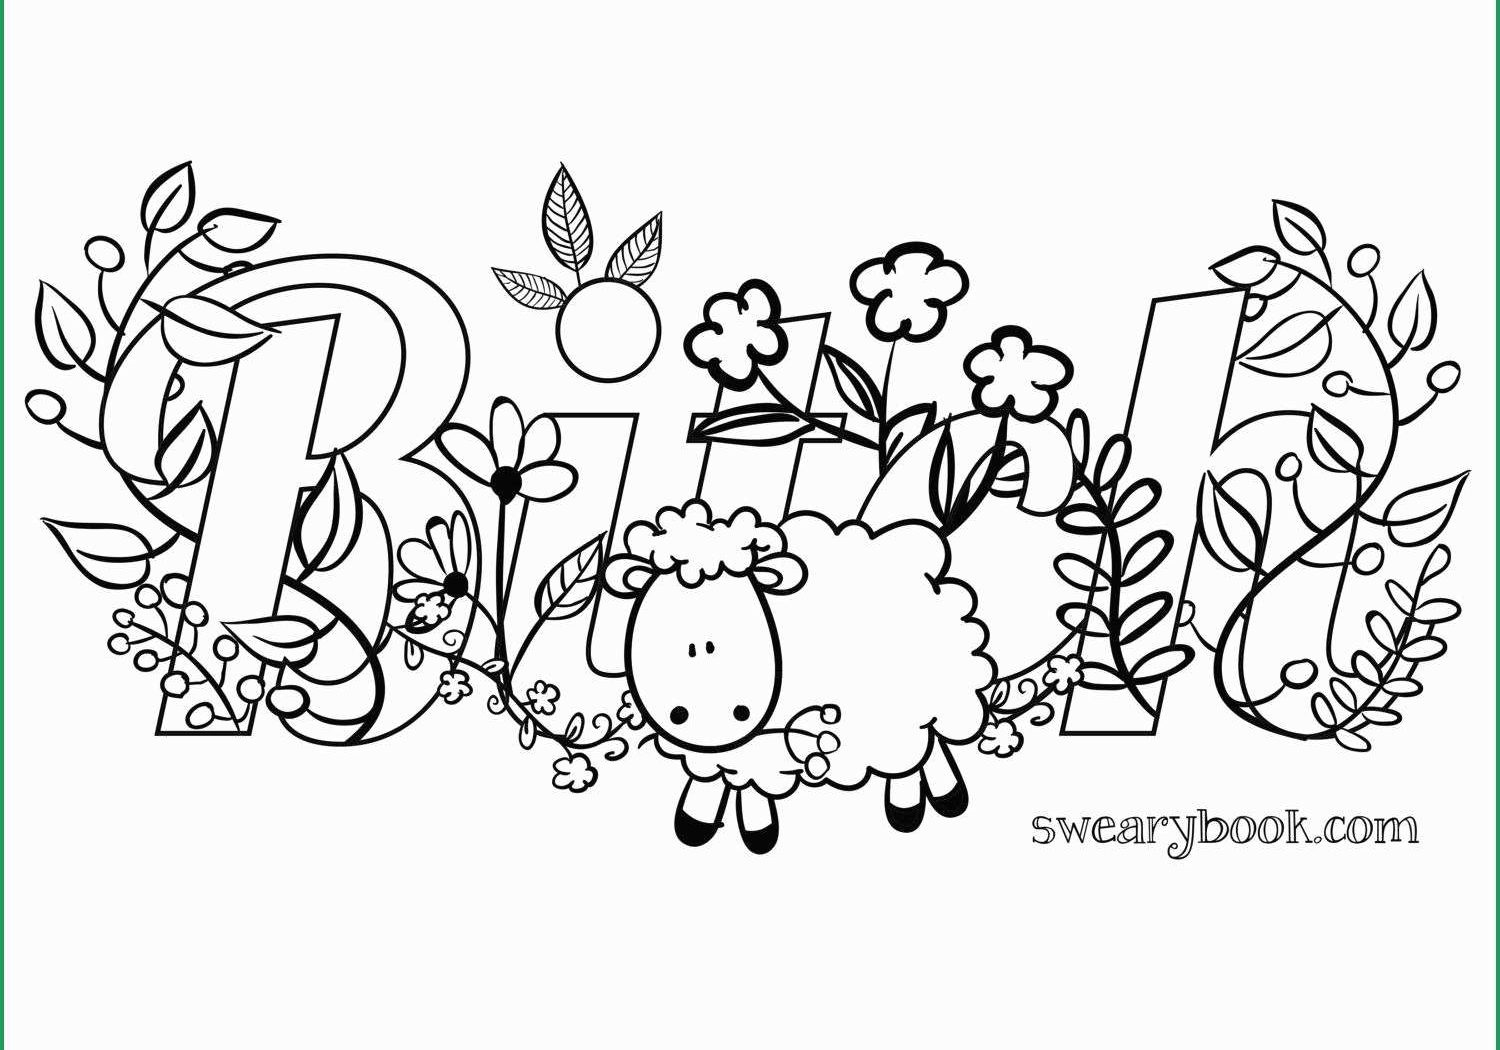 Coloring Book World: 70 Tremendous Adult Swear Word Coloring Pages. - Free Printable Coloring Pages For Adults Swear Words